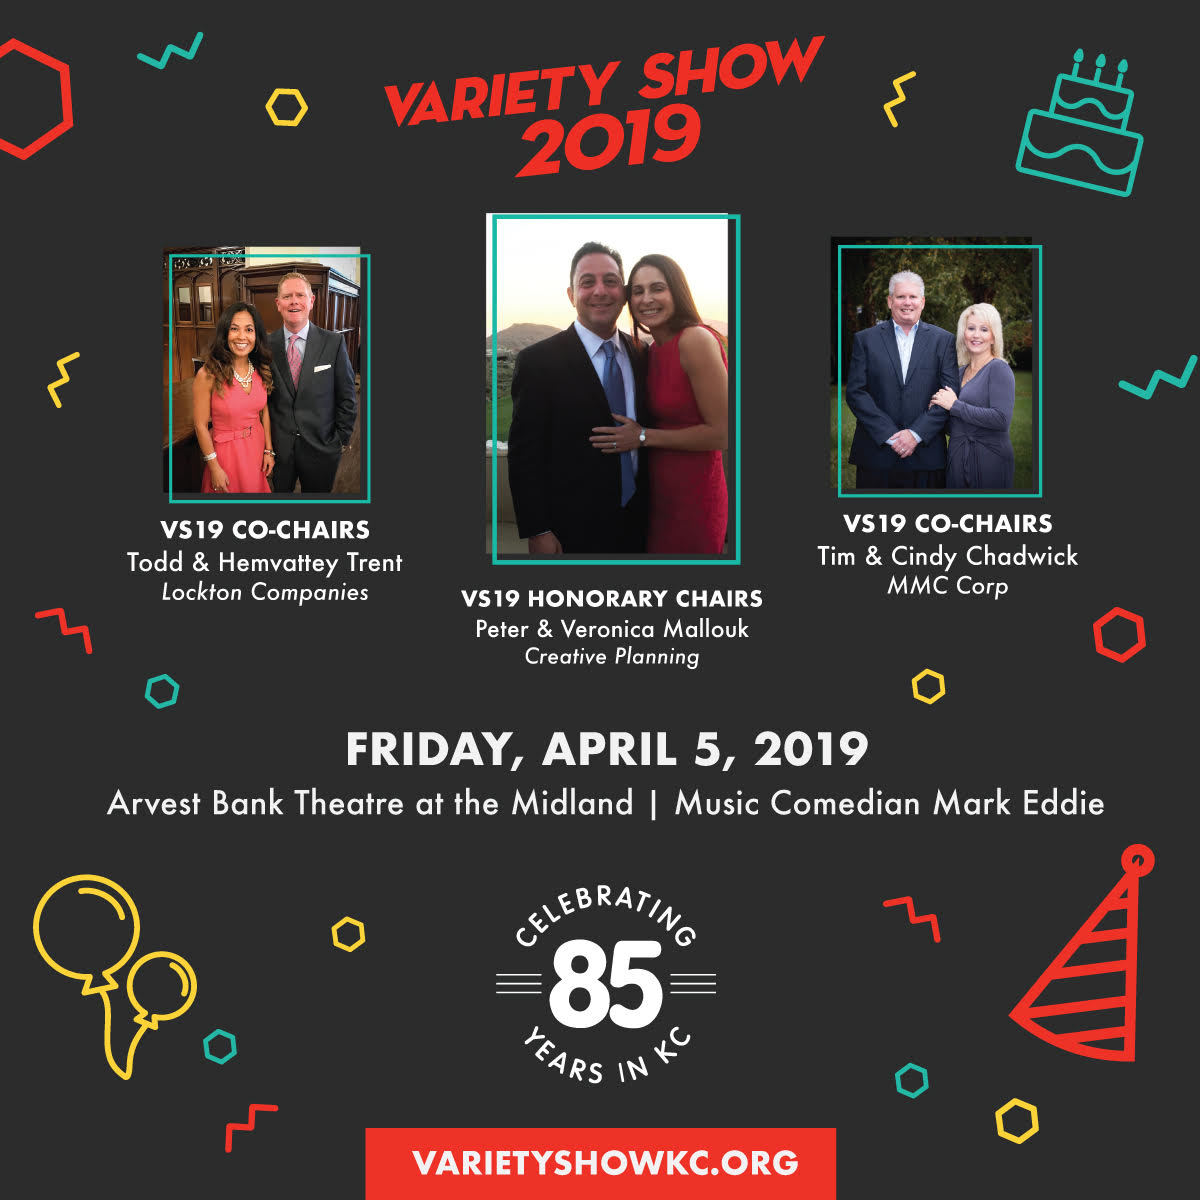 Variety-Show-2019-email-sig.jpg